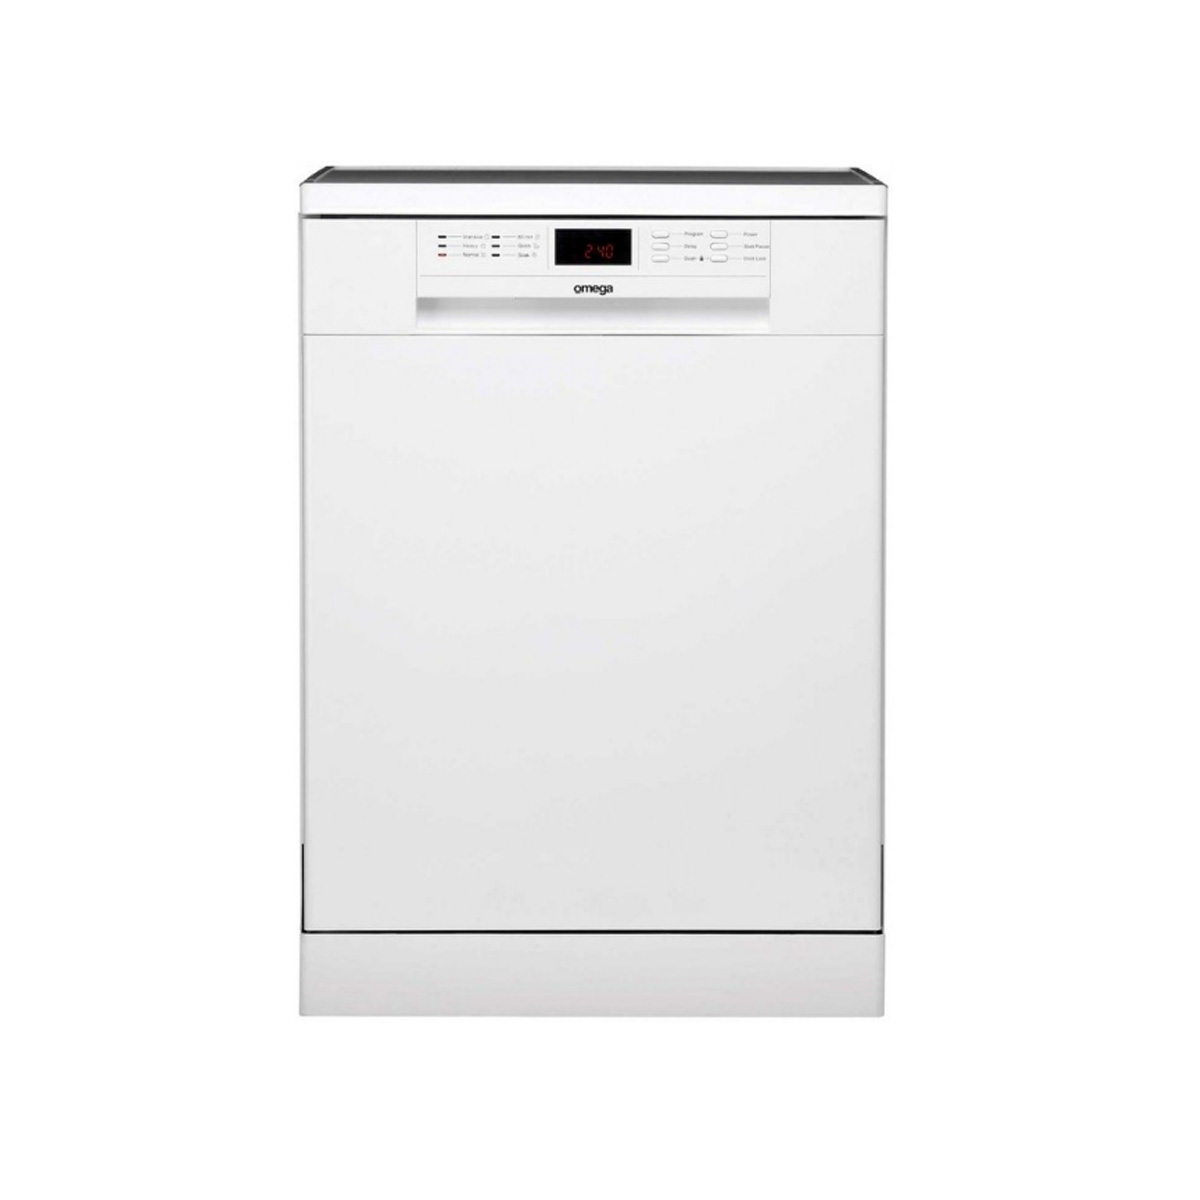 Omega Dishwasher ODW707WB